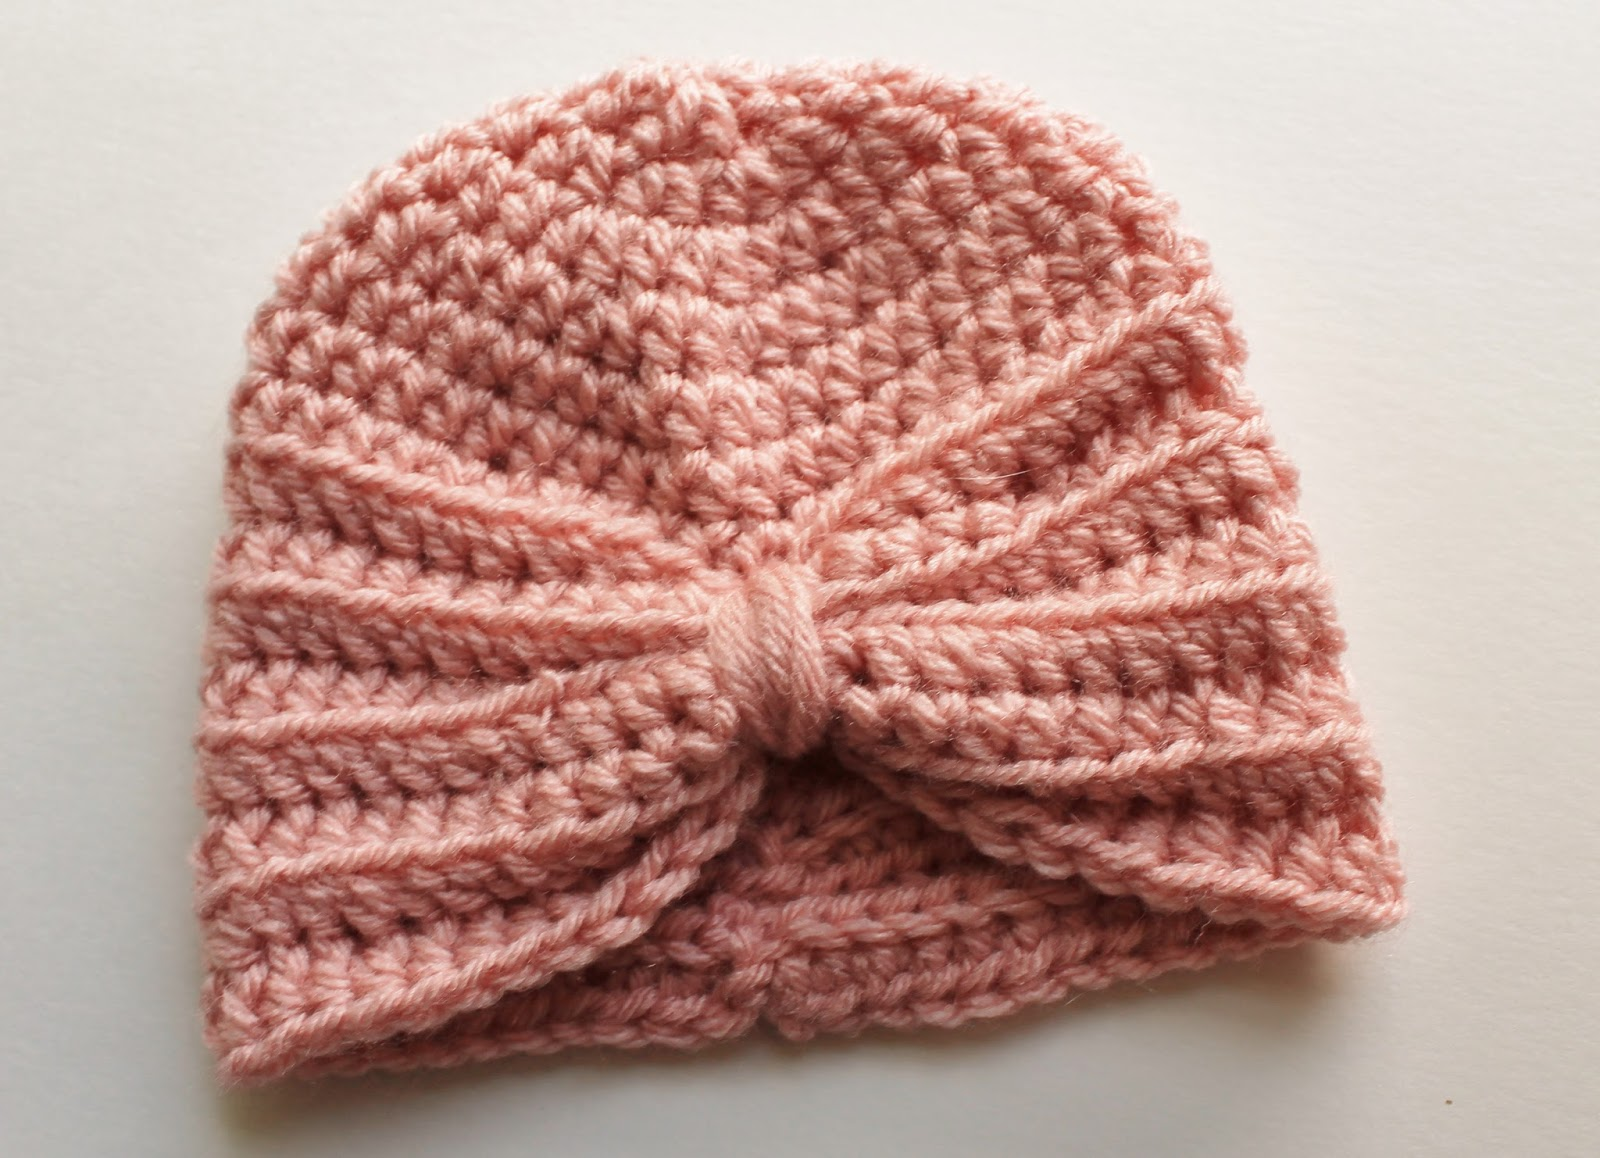 kozy & co: Crochet Baby Turban Pattern